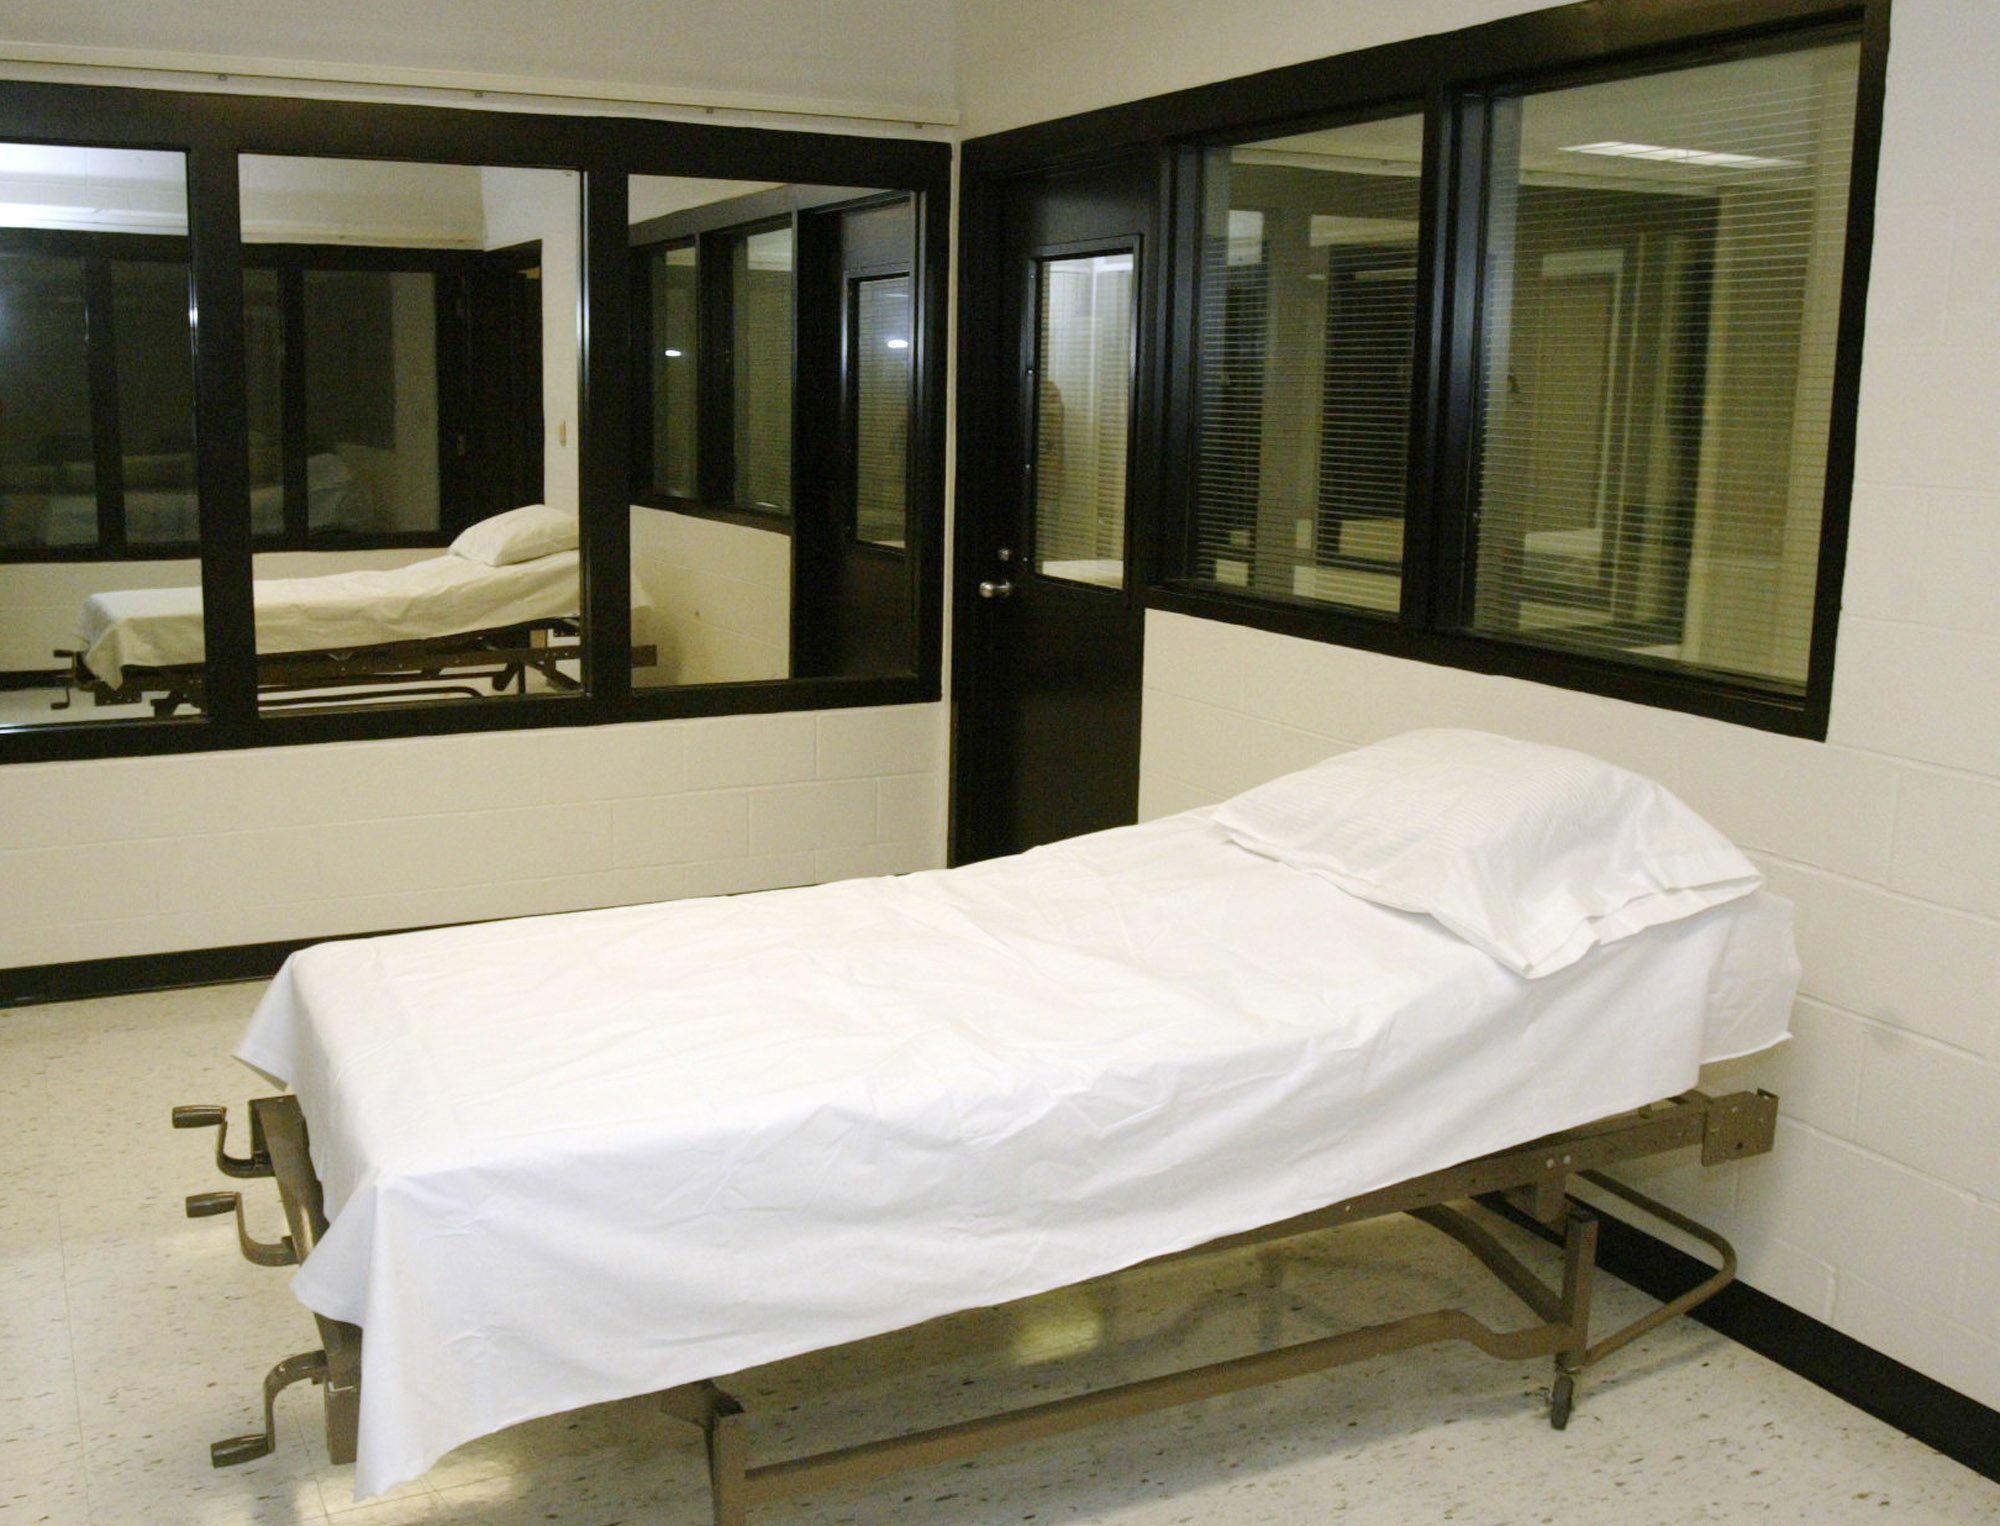 Image: The death chamber at the Missouri Correctional Center in Bonne Terre, Mo.